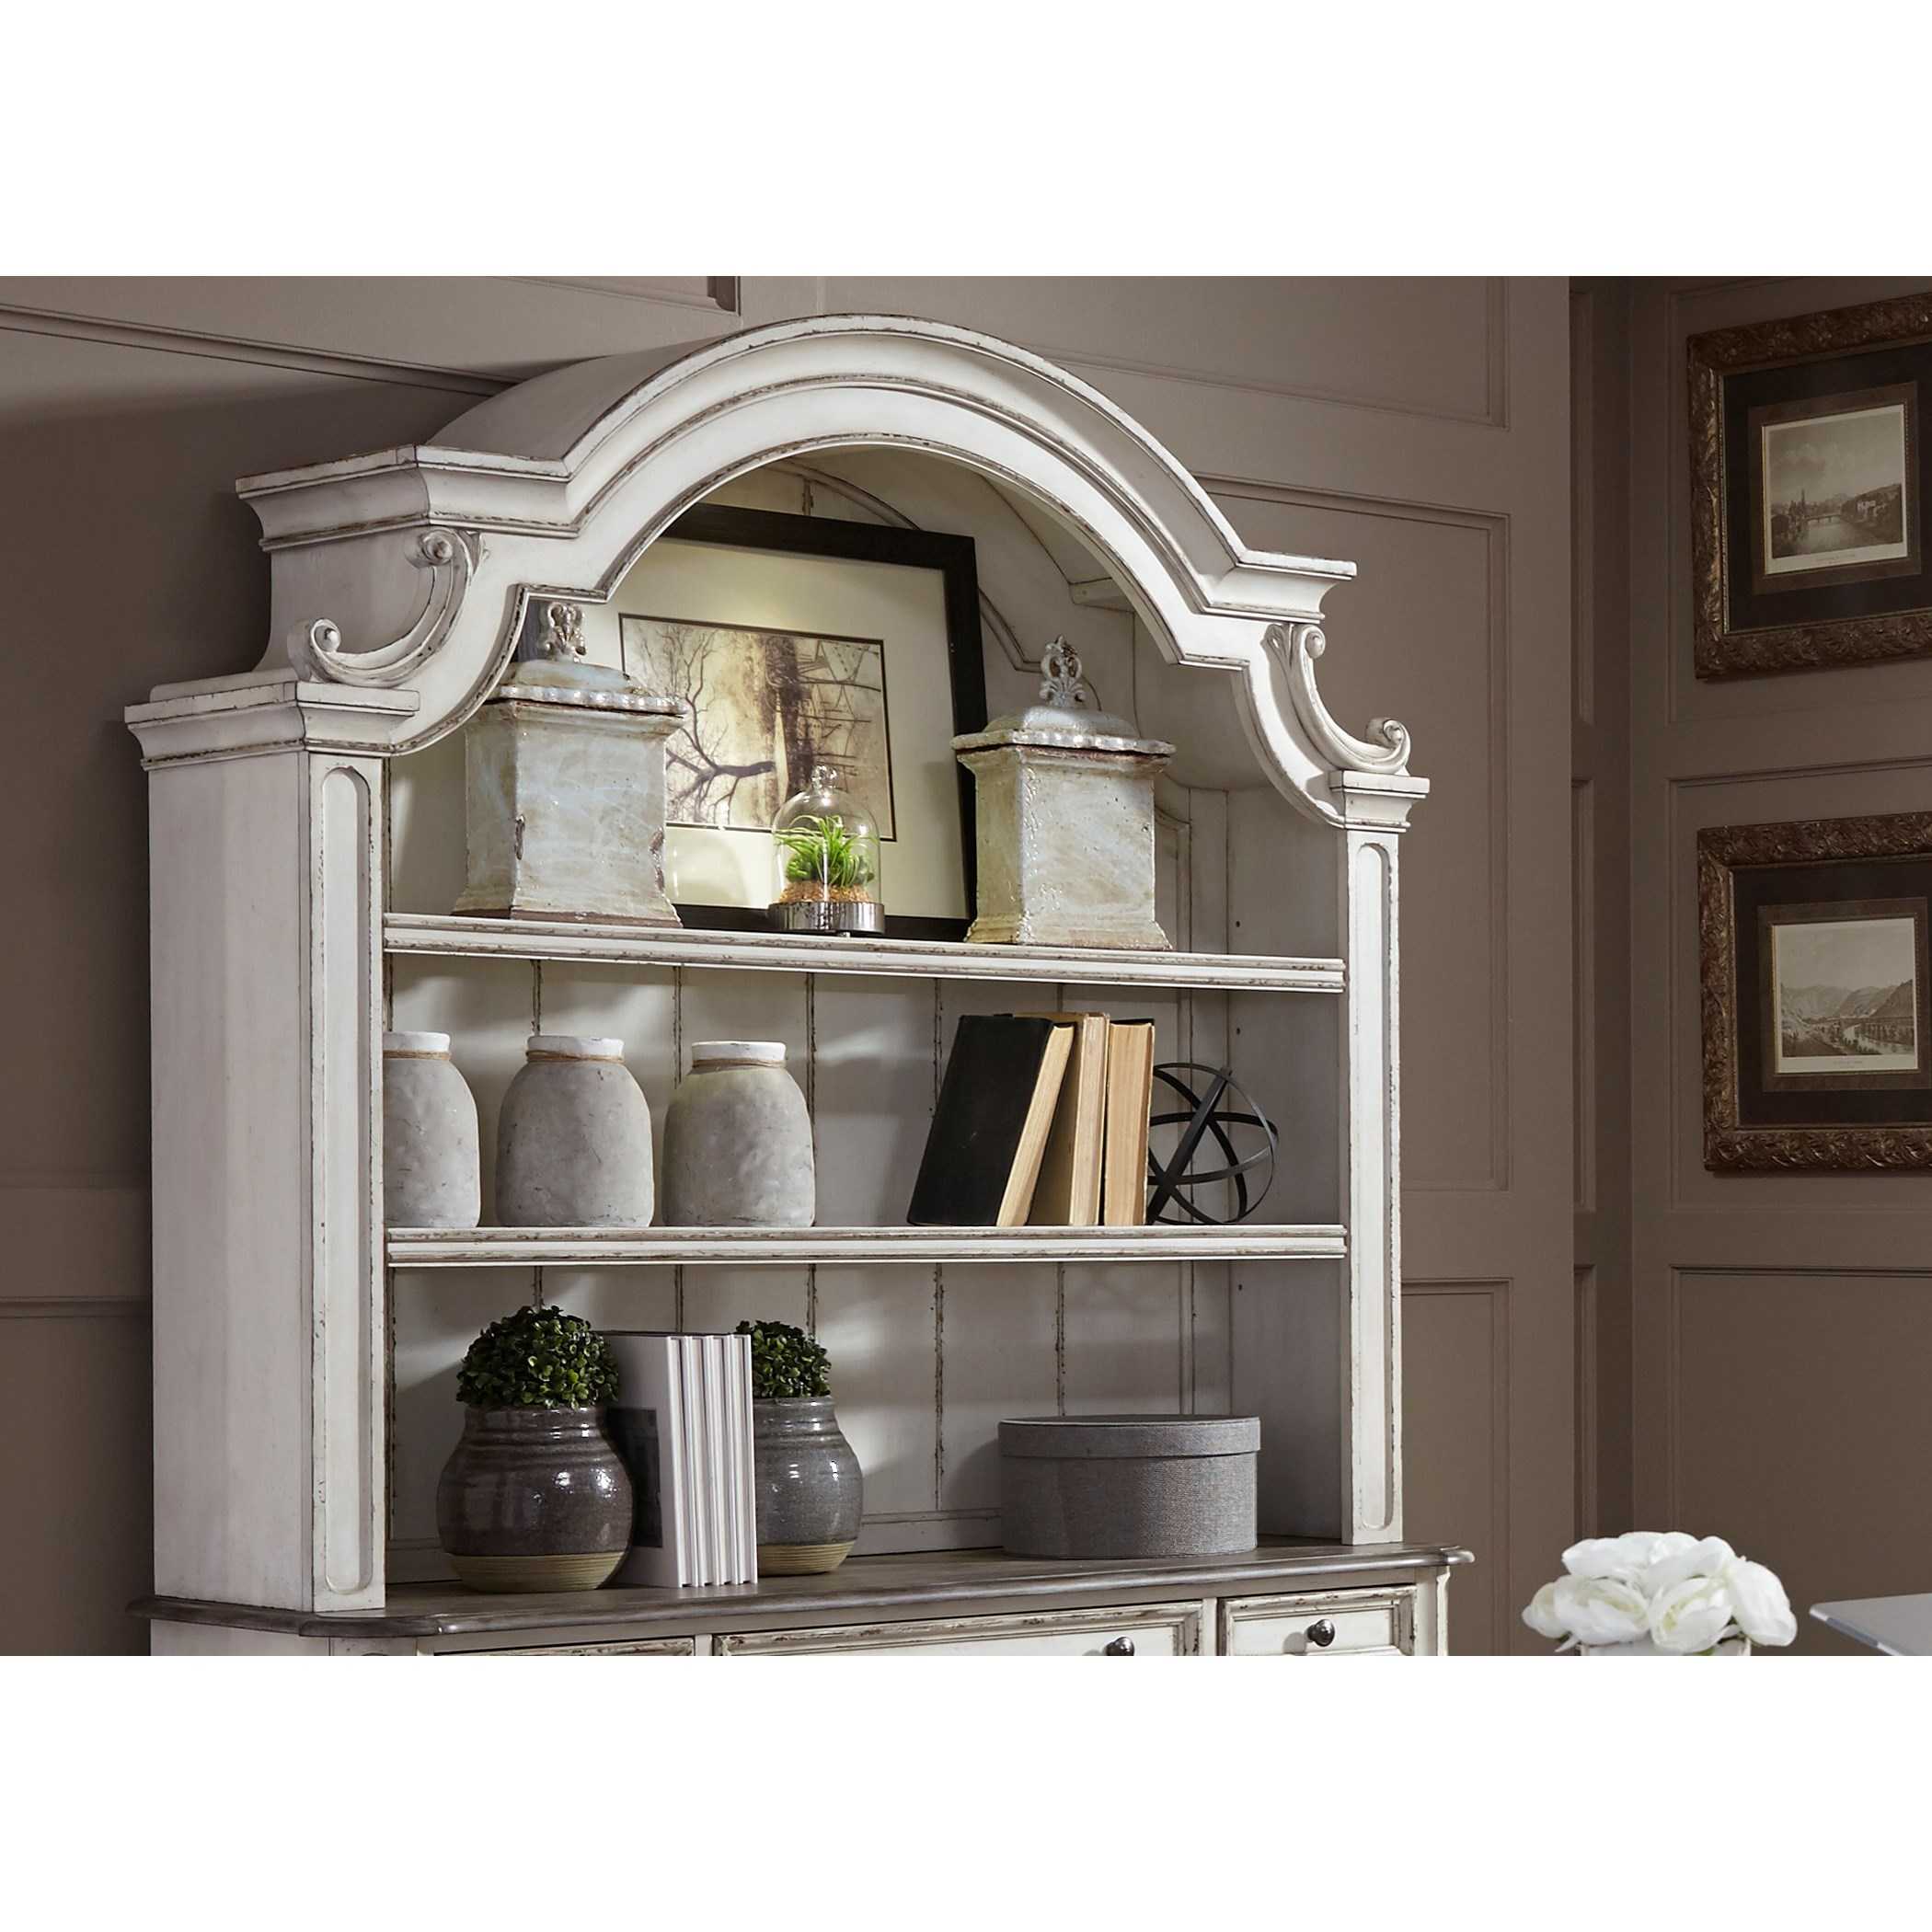 Beau Liberty Furniture Magnolia Manor Office Credenza Hutch With Touch Lighting